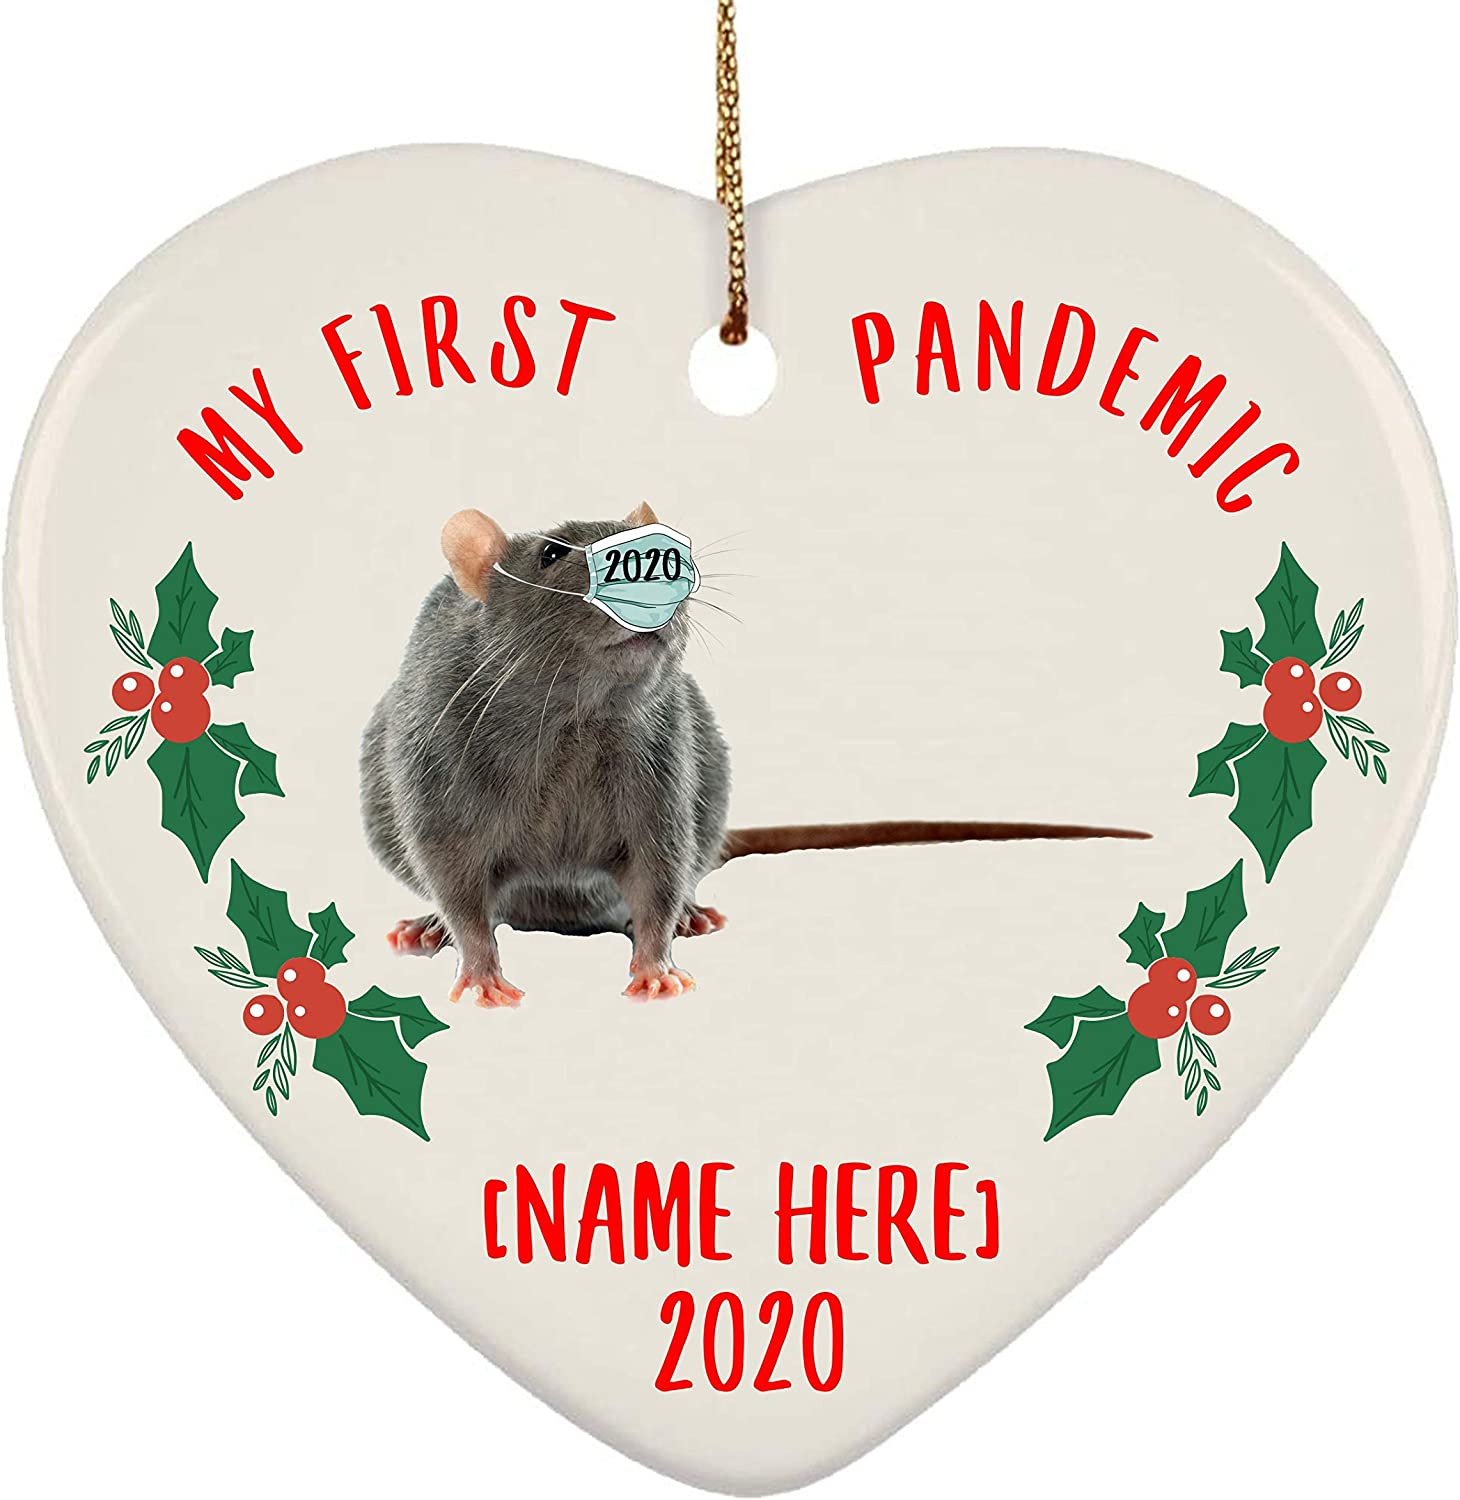 Lovesout Personalized Name Rat Psd Gray My First Pandemic Christmas 2020 Heart Ornament